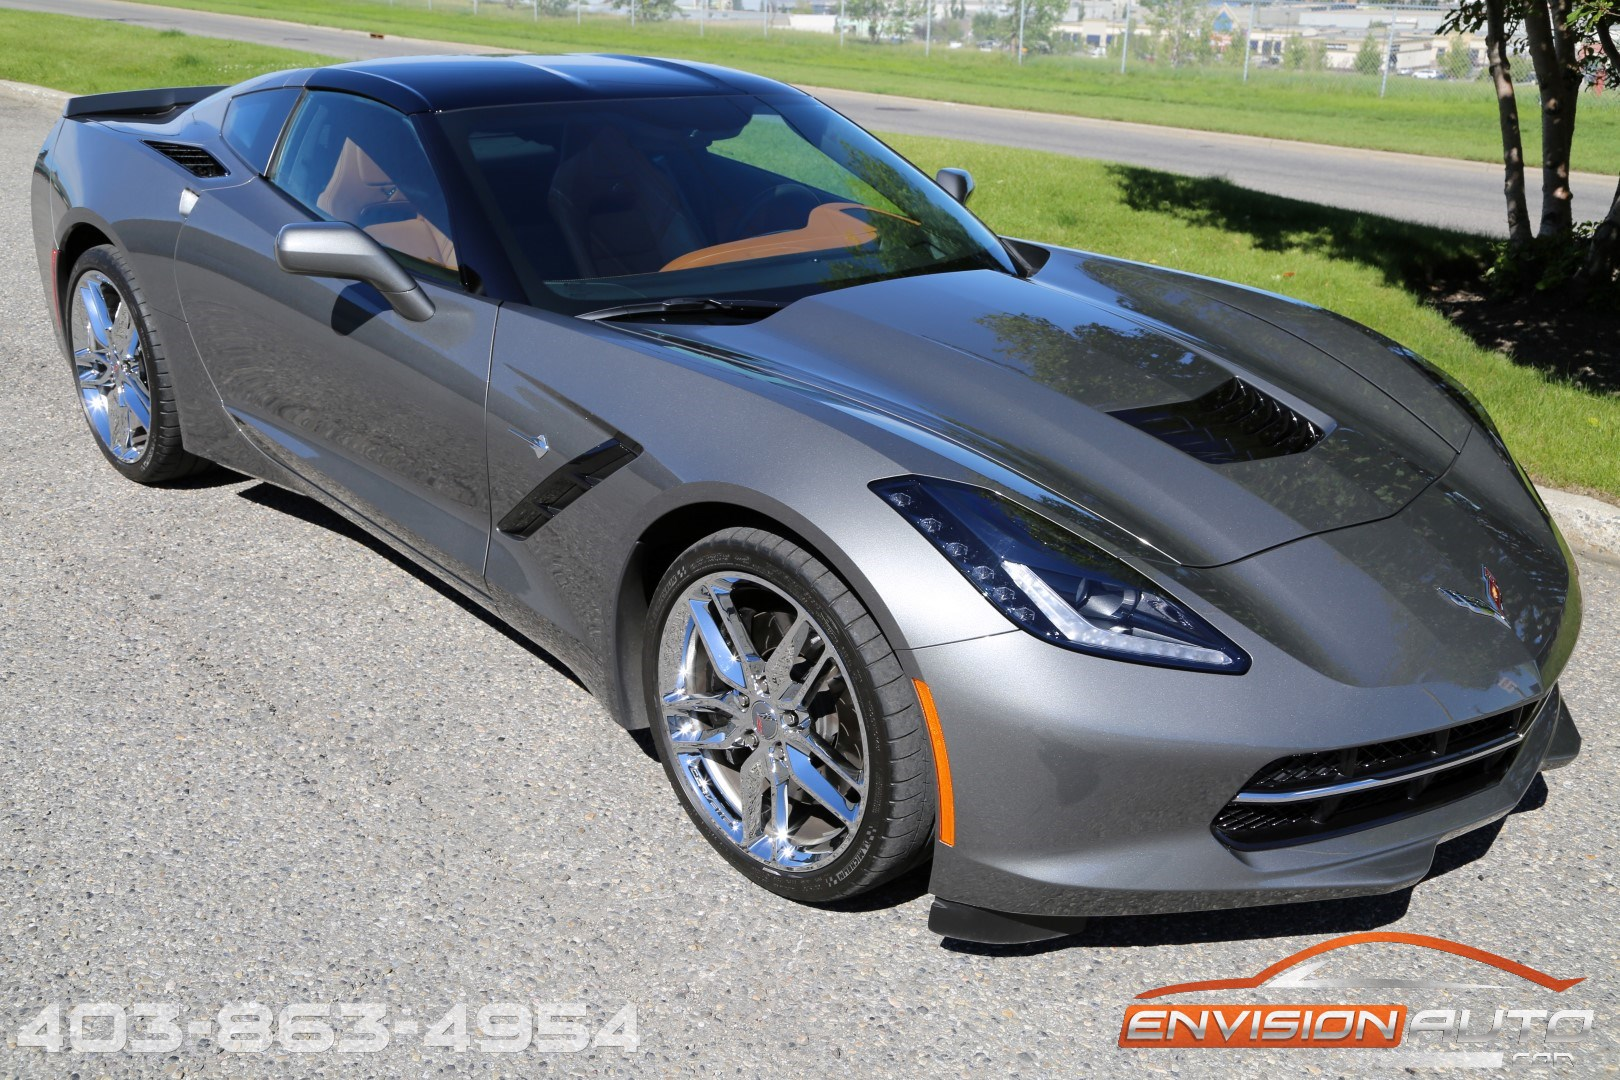 2015 chevrolet corvette stingray 3lt z51 glass targa roof envision auto. Black Bedroom Furniture Sets. Home Design Ideas